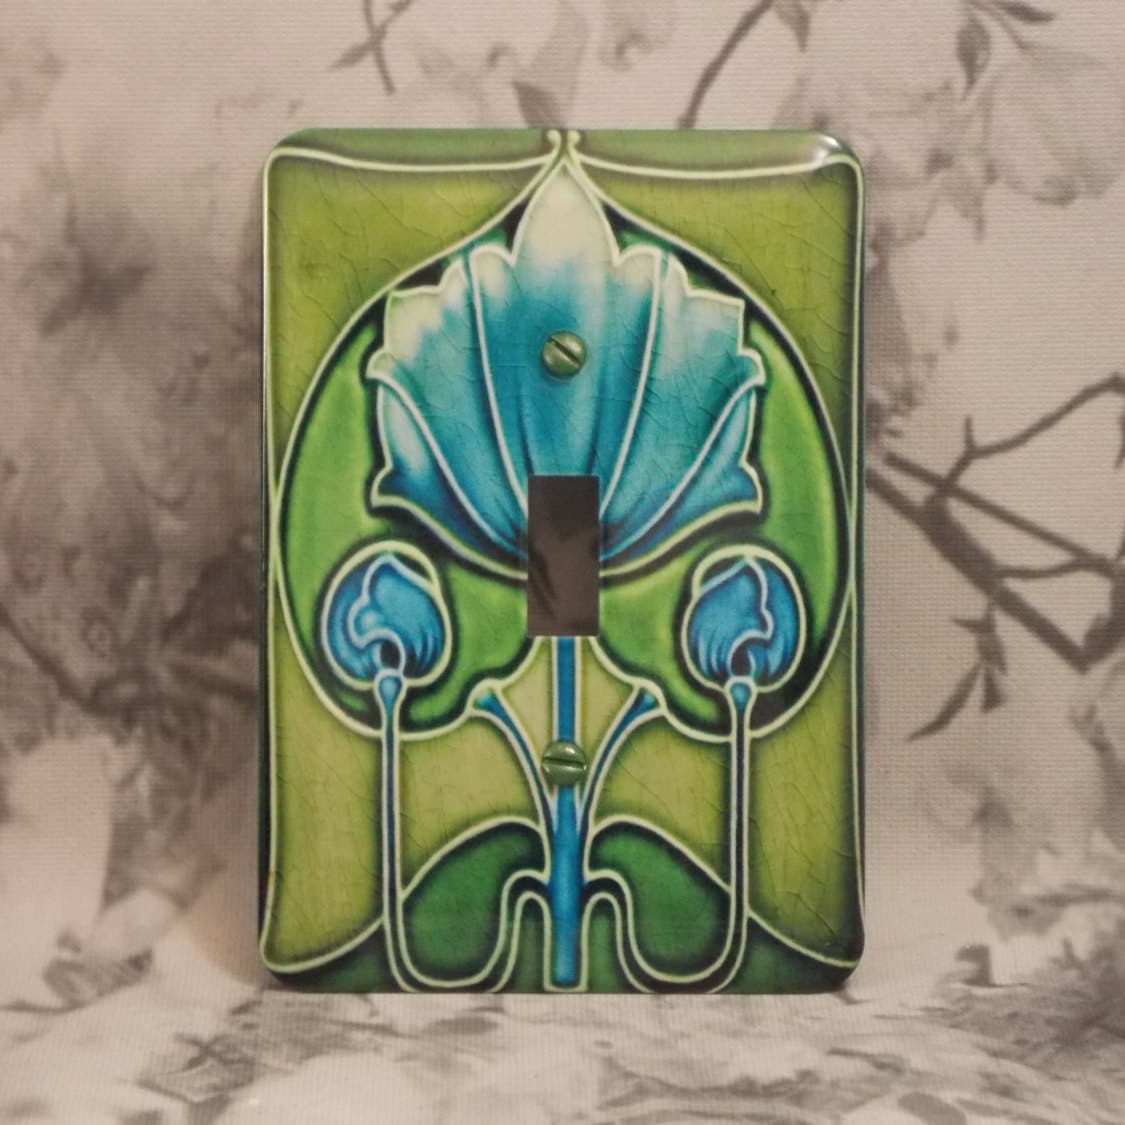 Metal Deco Light Switch Cover Blue And Green By Dynastyprints